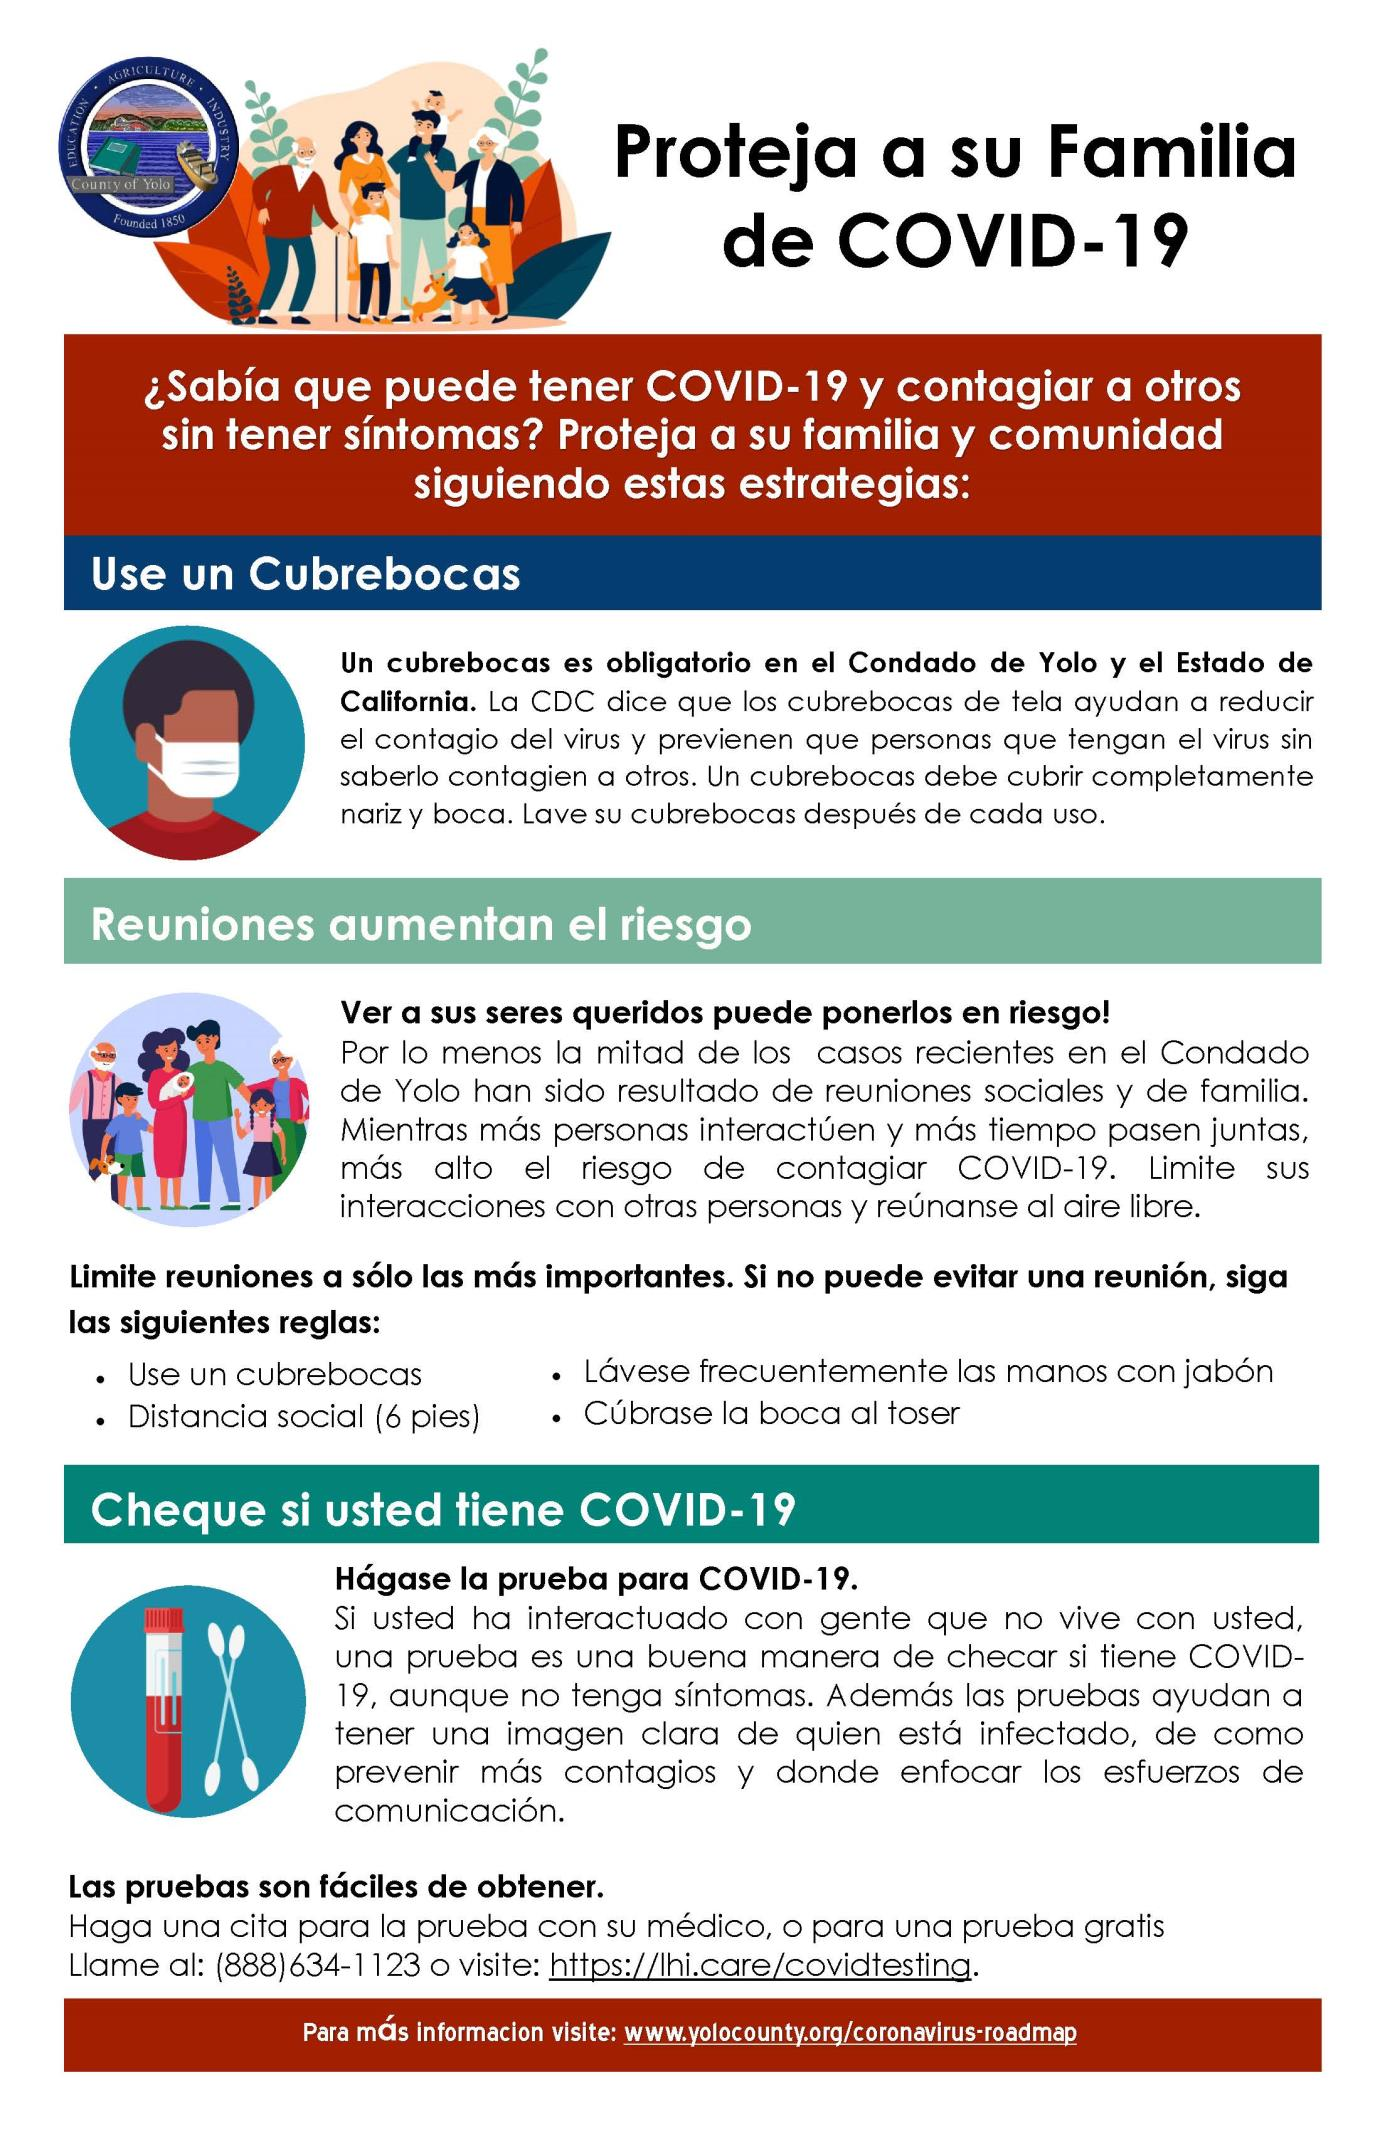 Countywide Poster 06.24.20 (Spanish)